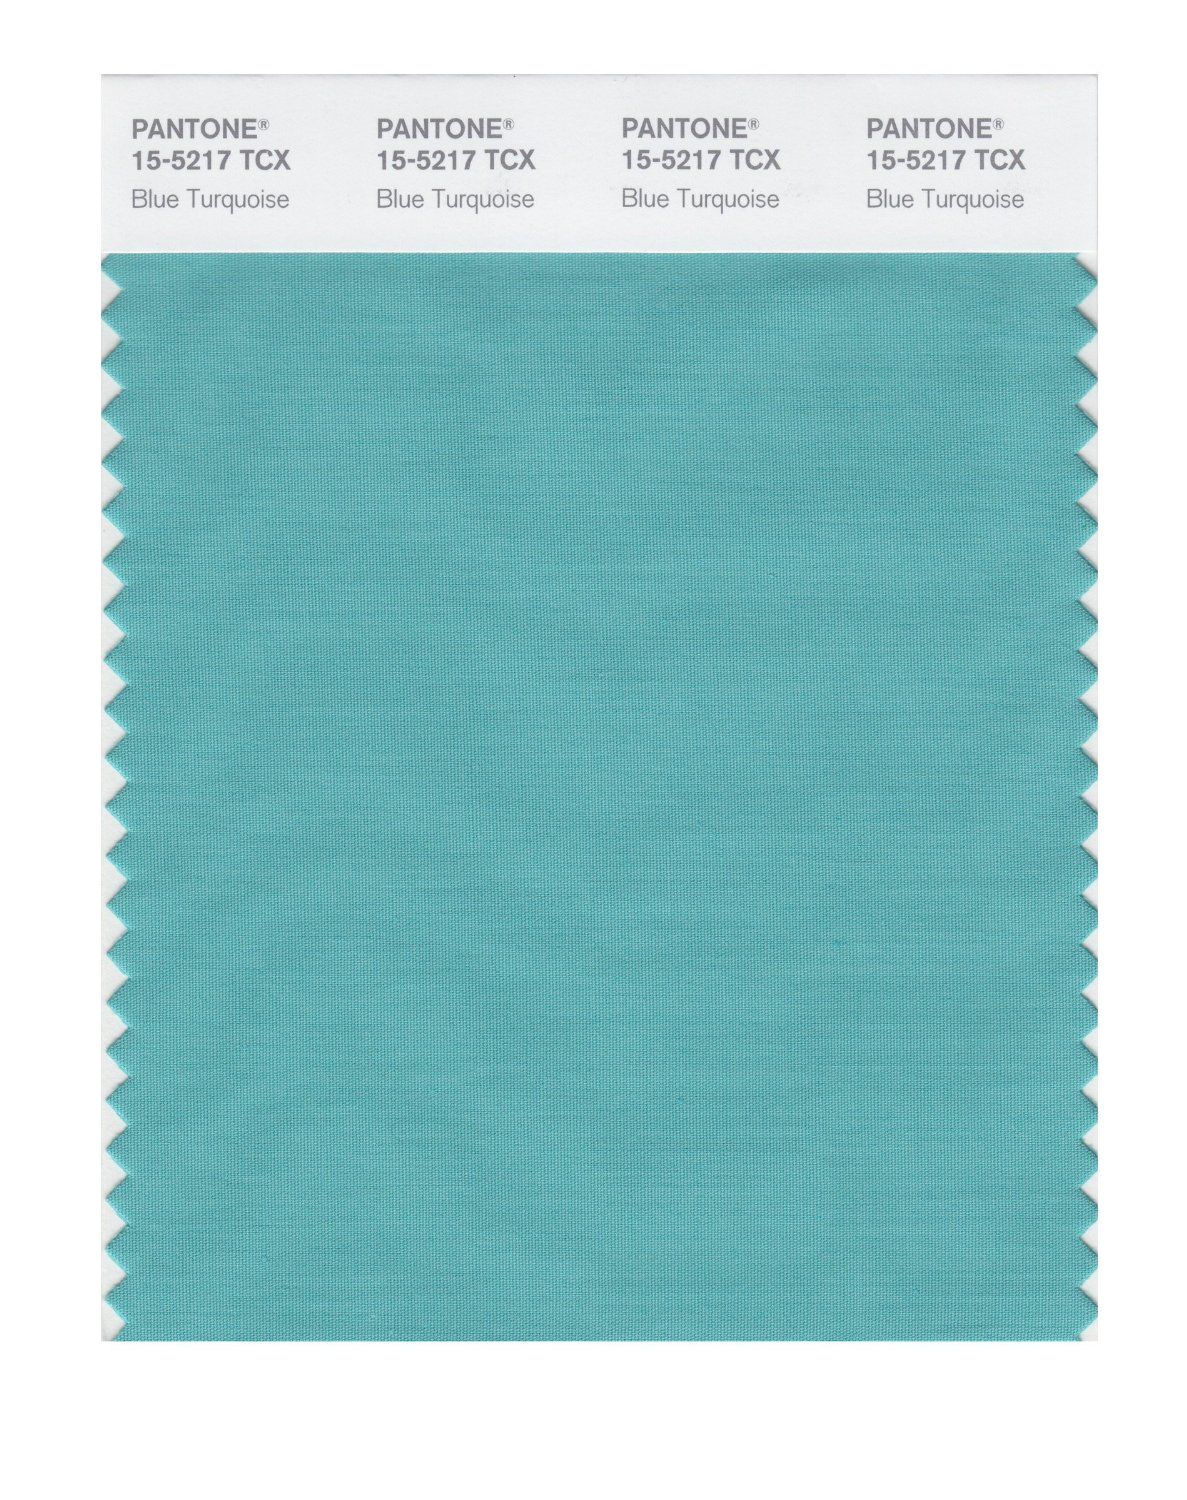 Pantone Smart Swatch 15-5217 Blue Turquoise